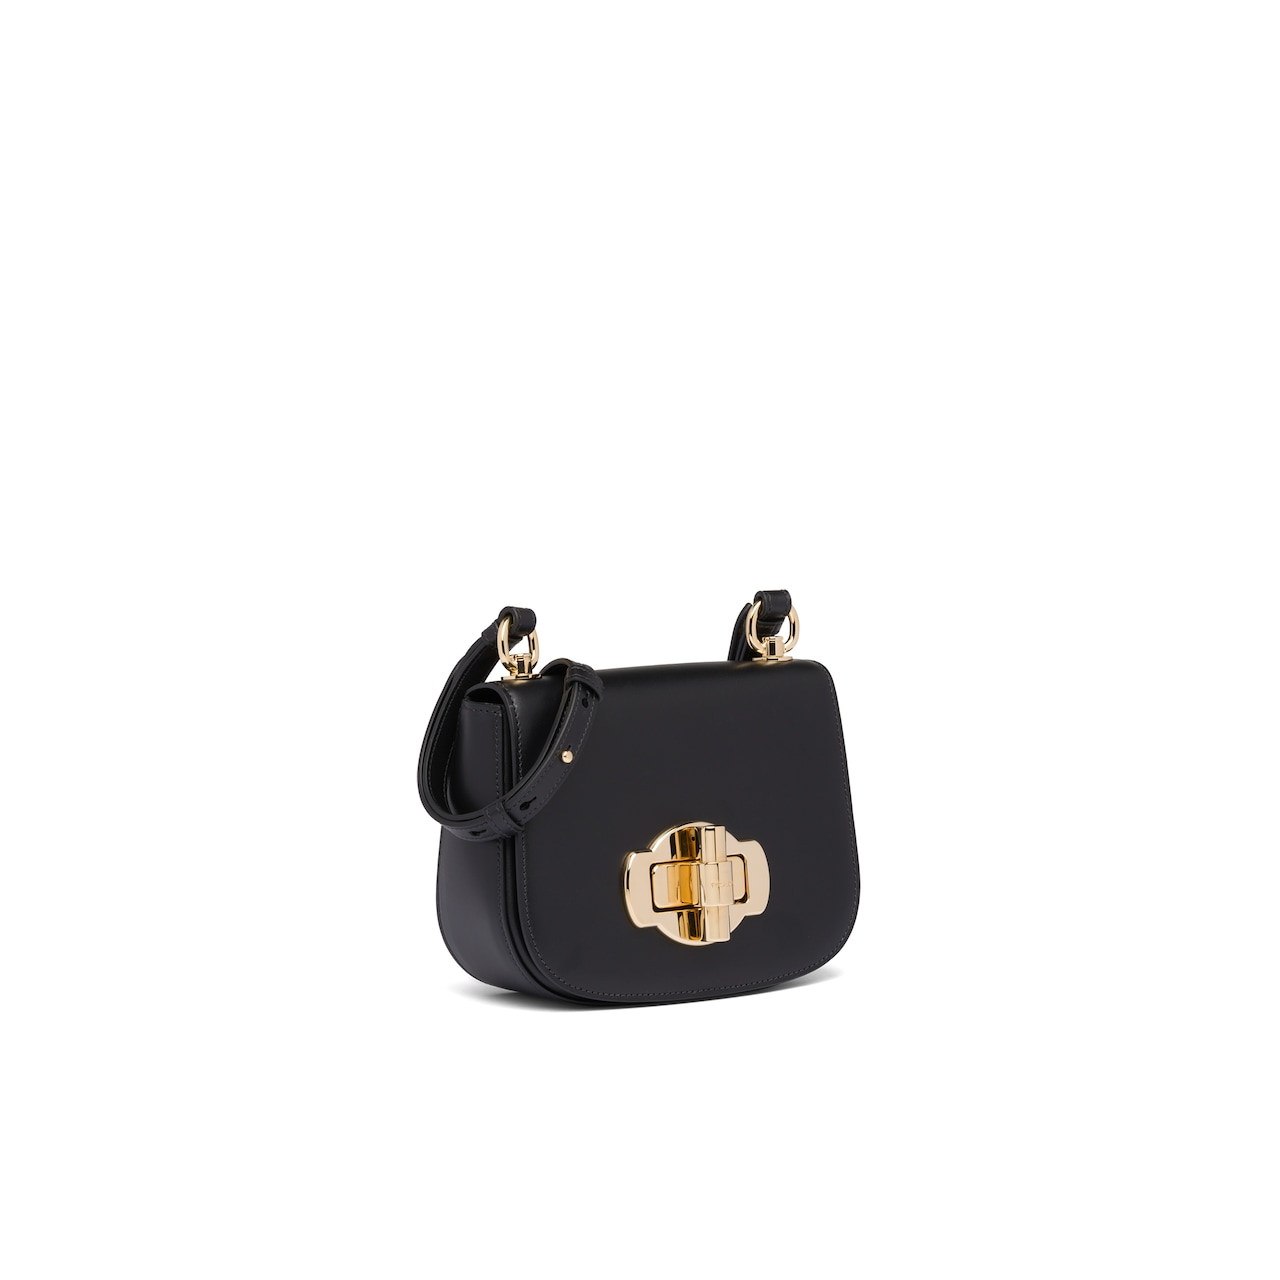 Prada Leather shoulder bag 3